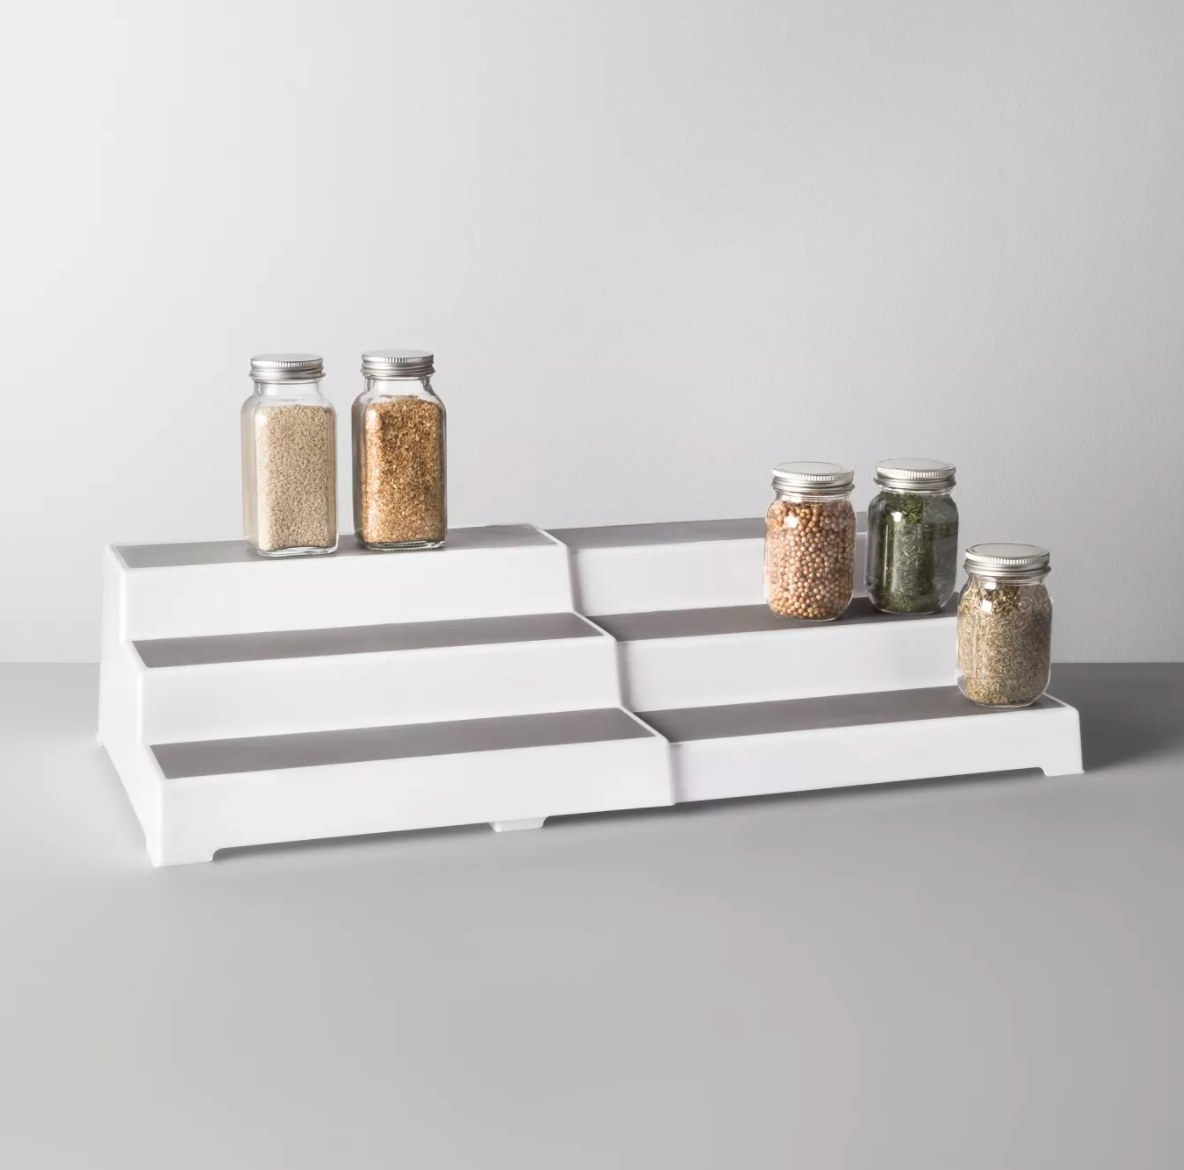 A white riser that looks like three steps with gray tops holding jars